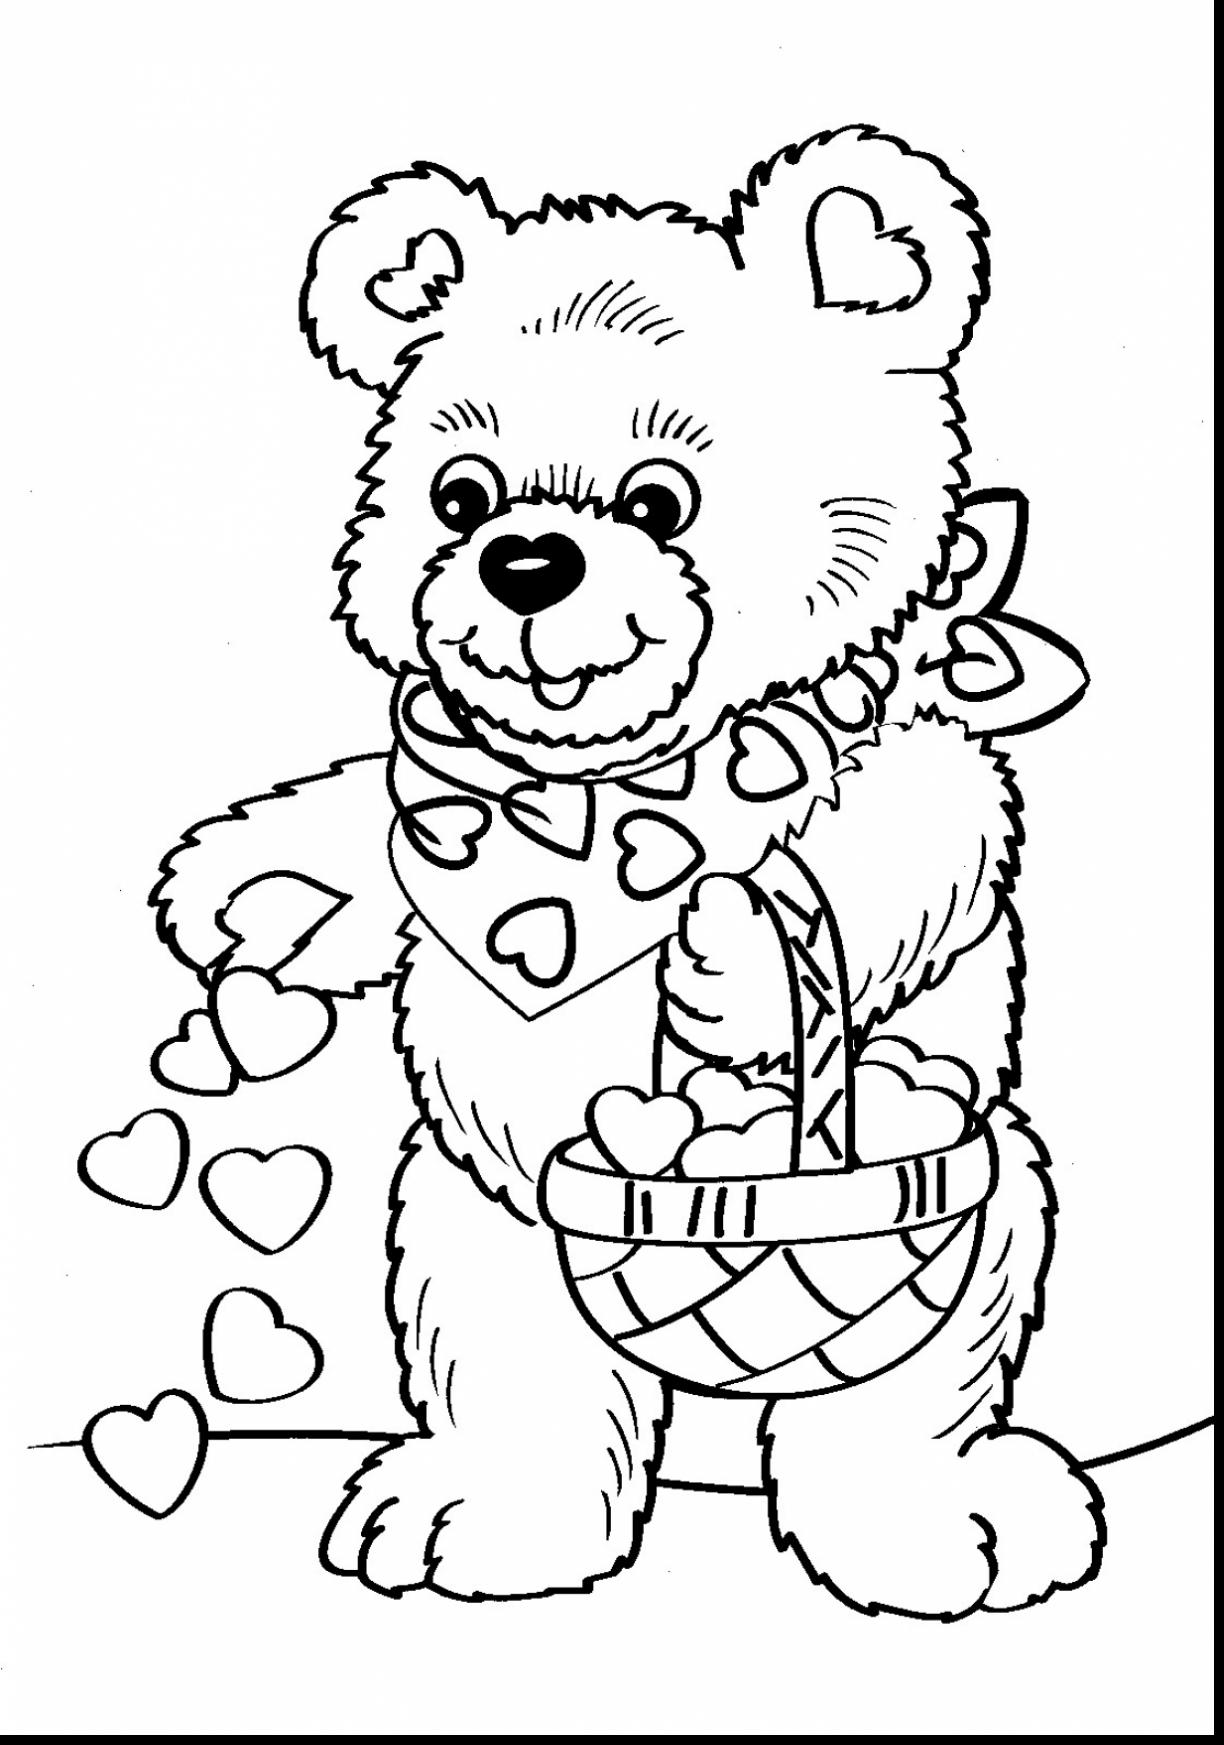 Valentine Coloring Pages To Print For Free at GetDrawings.com | Free ...